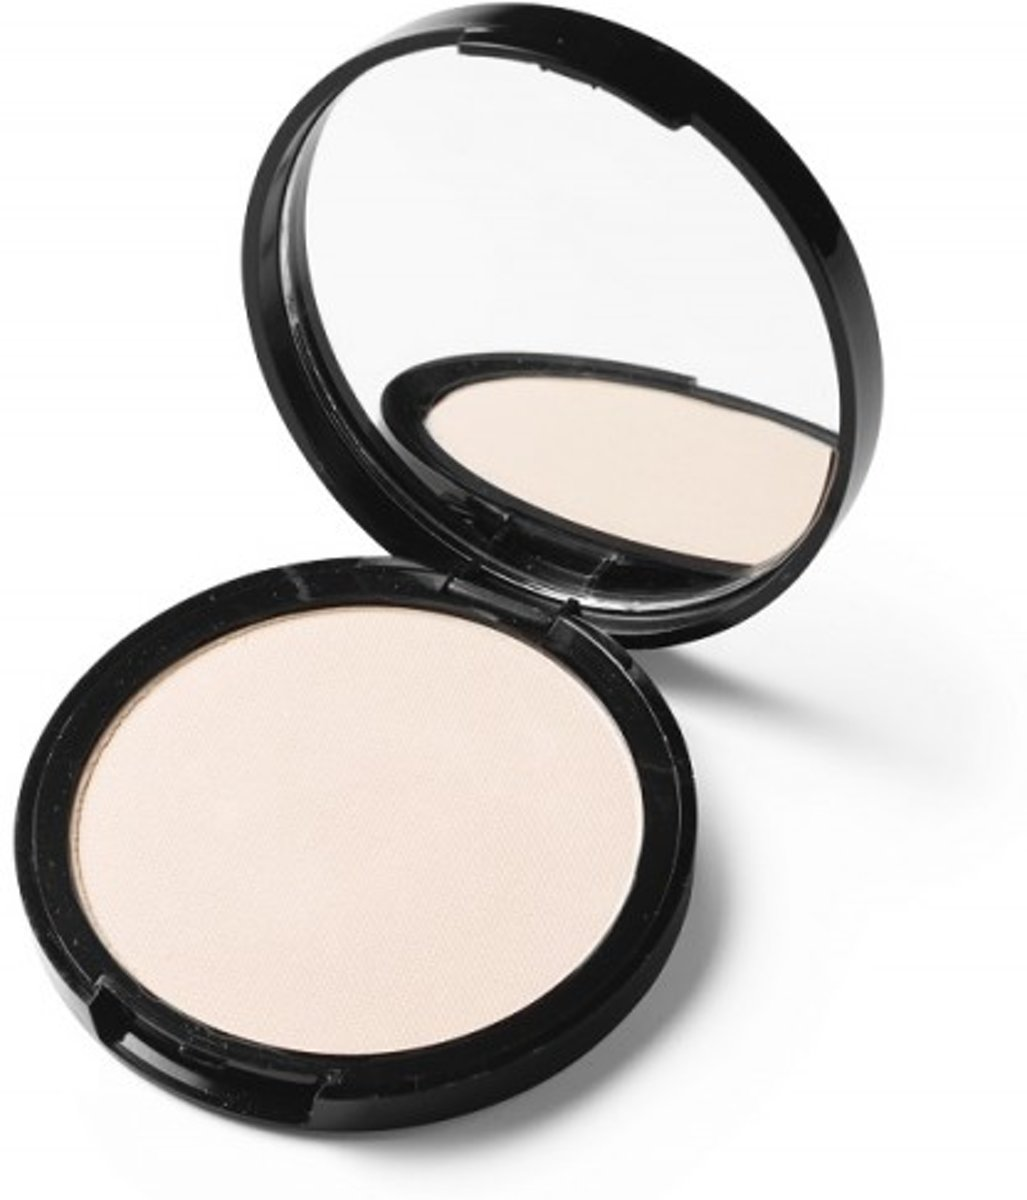 Ariane Inden Dual Active Powder Foundation - Soft Beige - Foundation